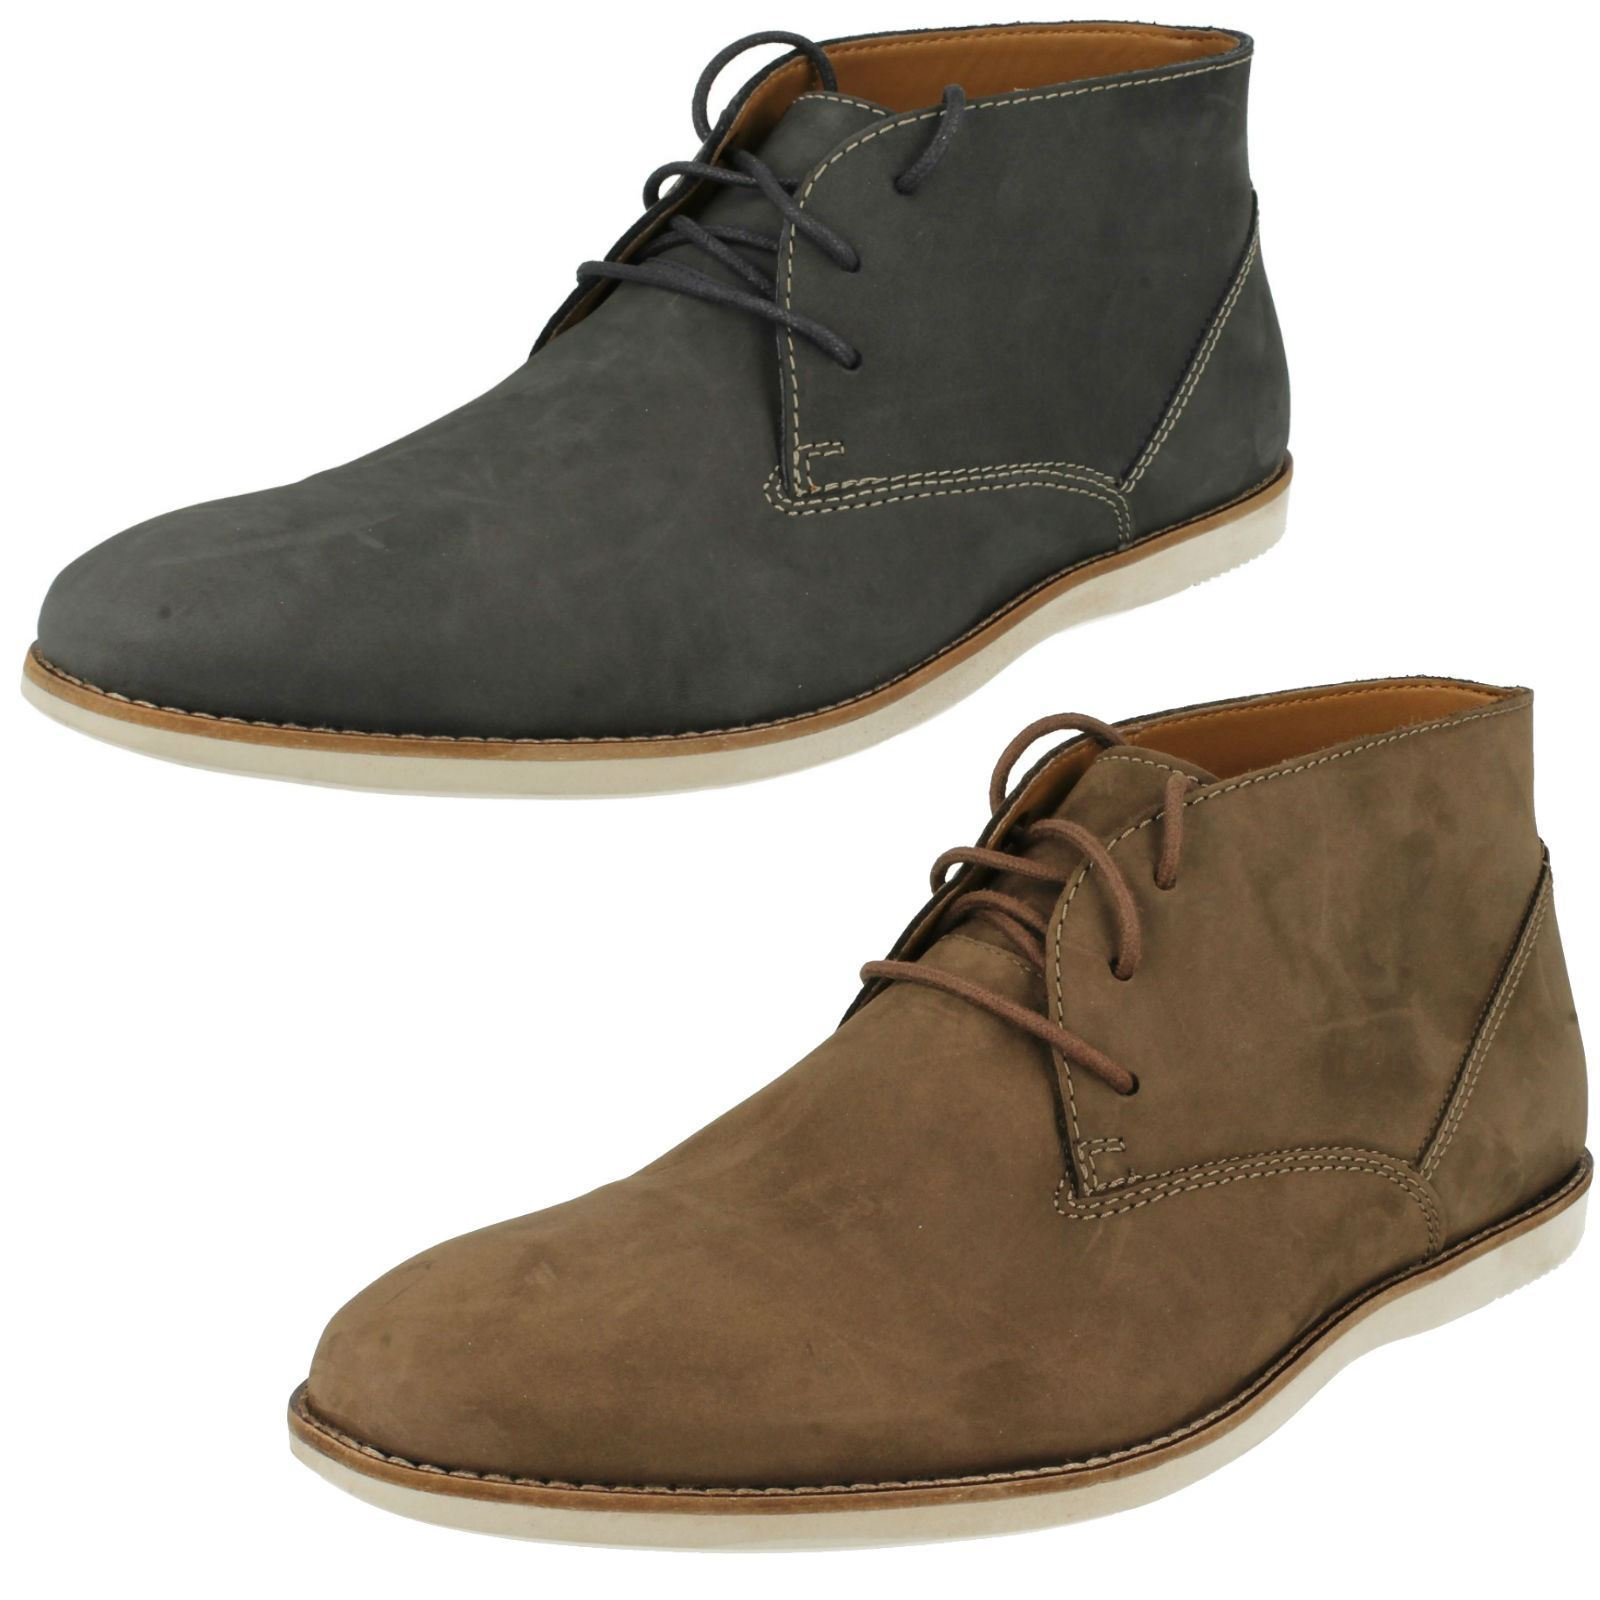 Mens Clarks Ankle Boots 'Franson Top'